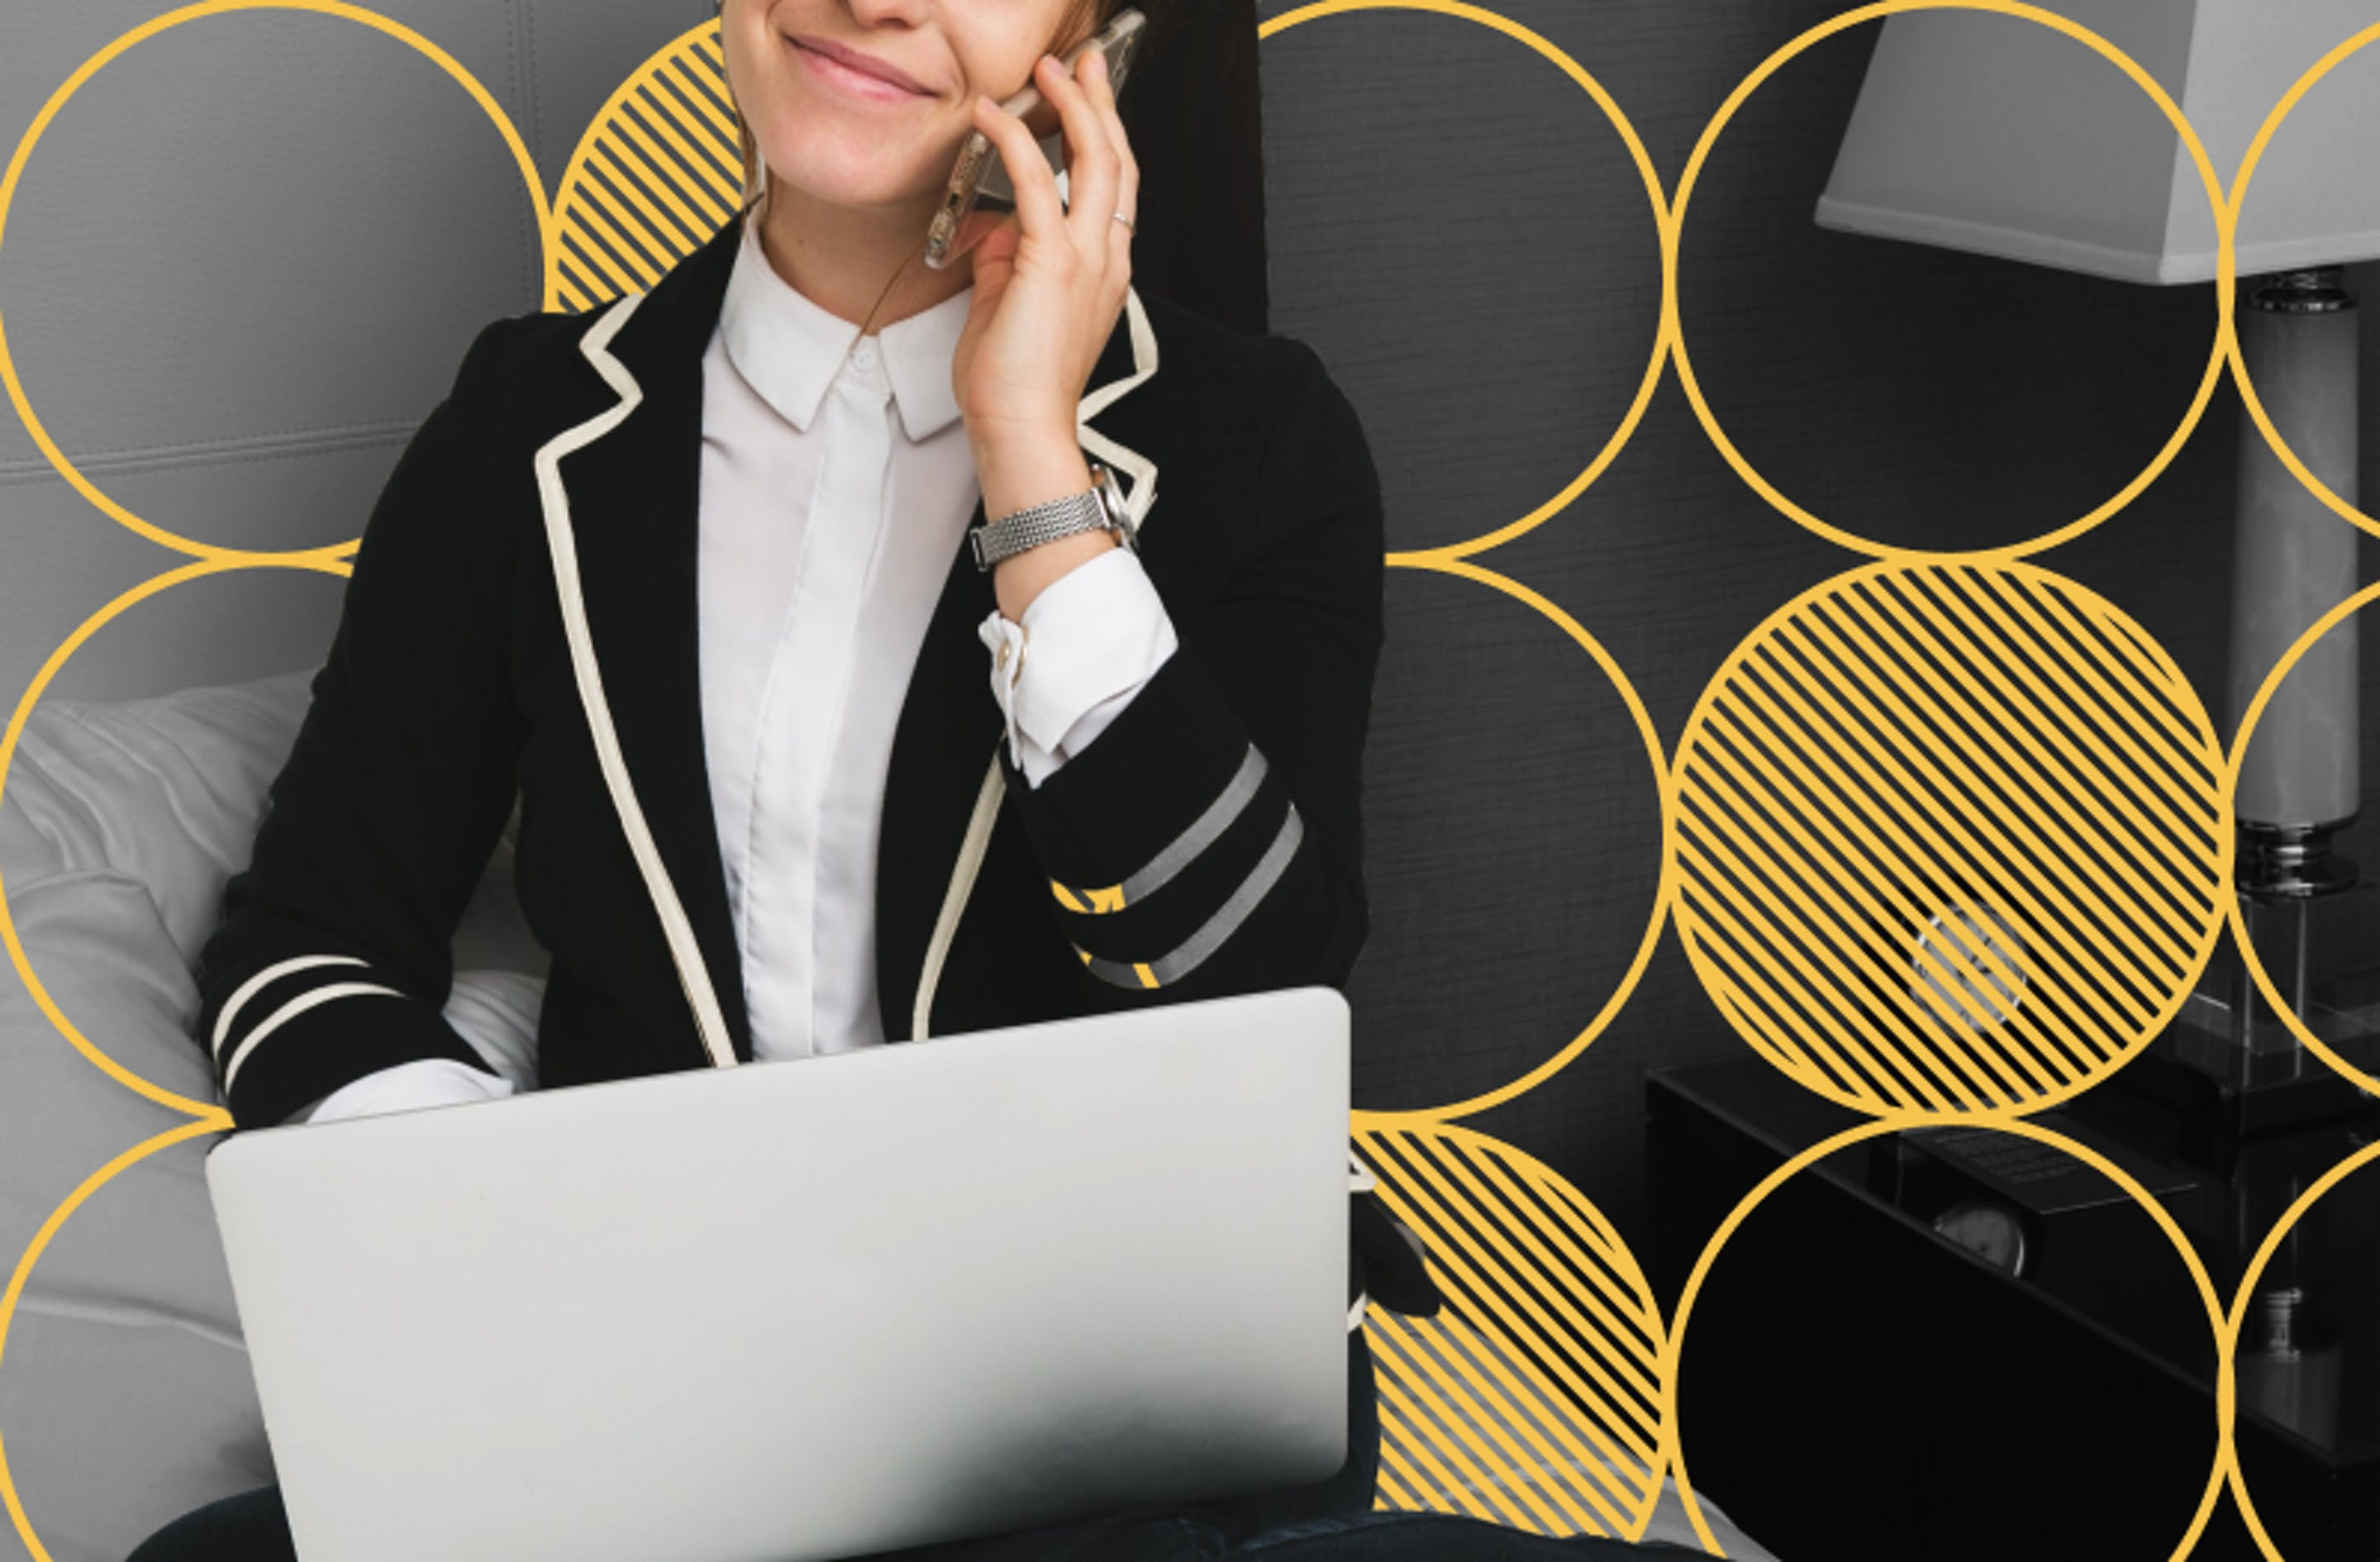 lady smiling with phone and laptop